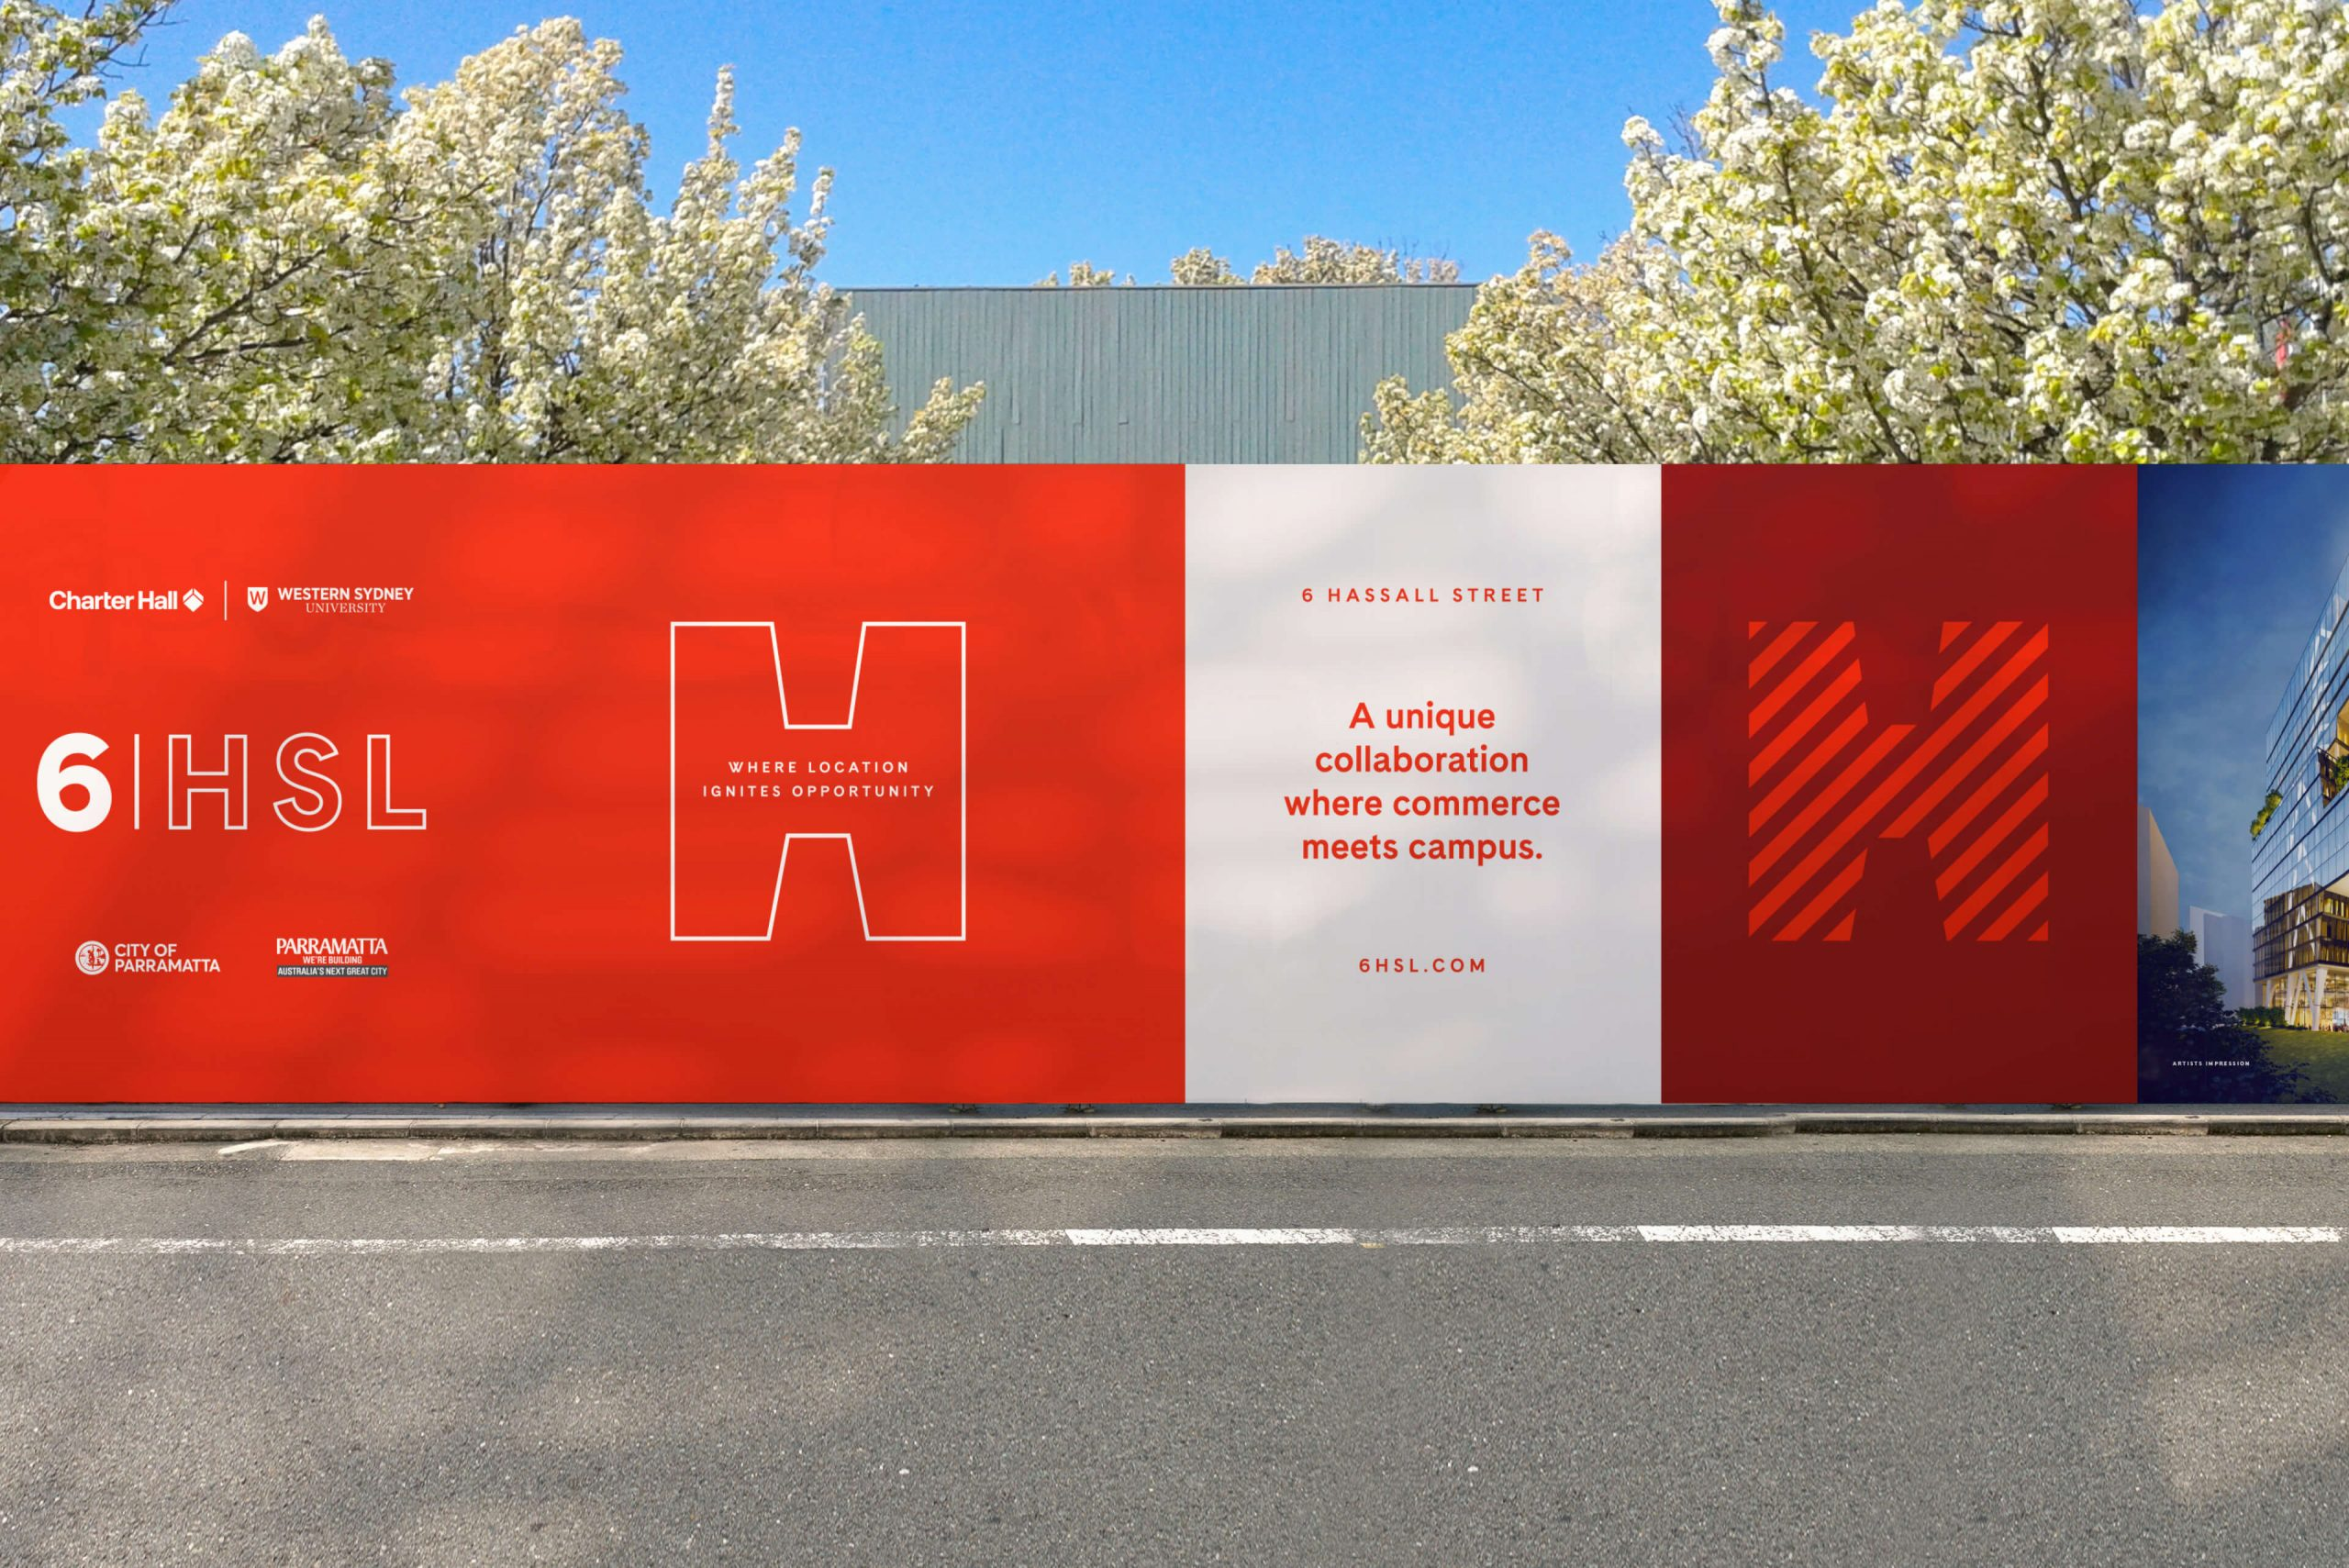 6 Hassall St Property Brand for Charter Hall - Hoarding Design & Communication